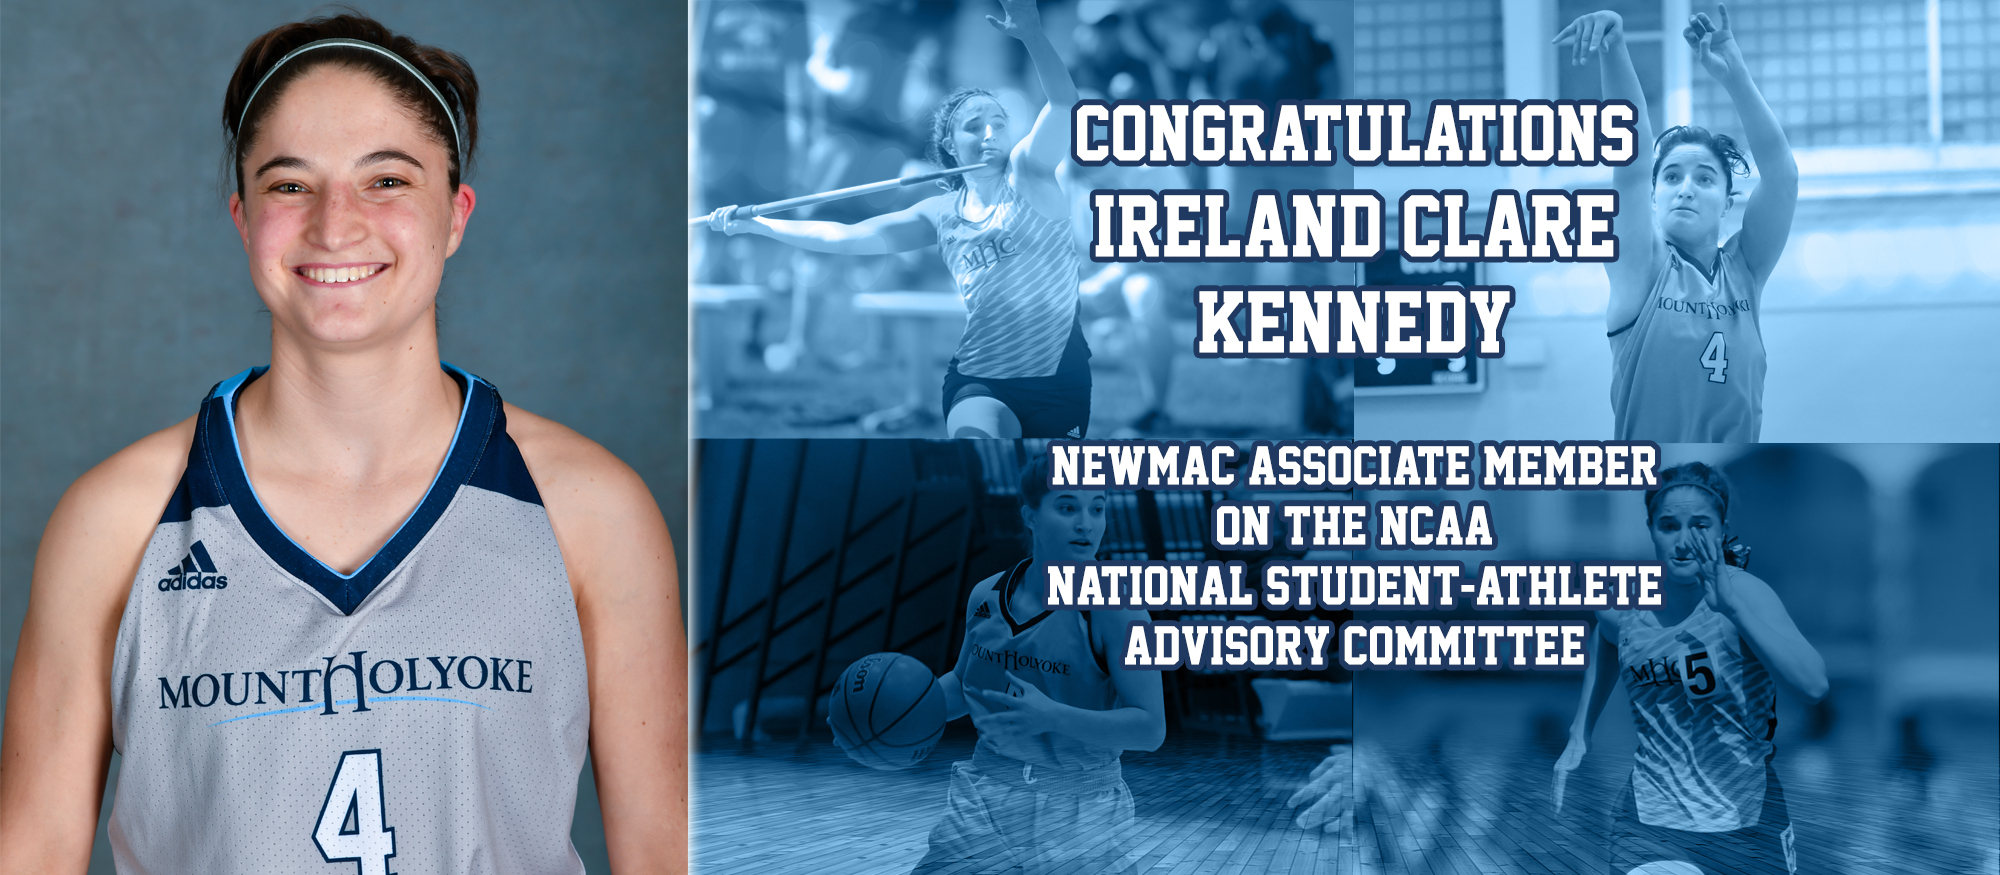 Image promoting Lyons basketball/track & field student-athlete, Ireland Clare Kennedy who was named the Associate Member for the NEWMAC to the National Student-Athlete Advisory Committee